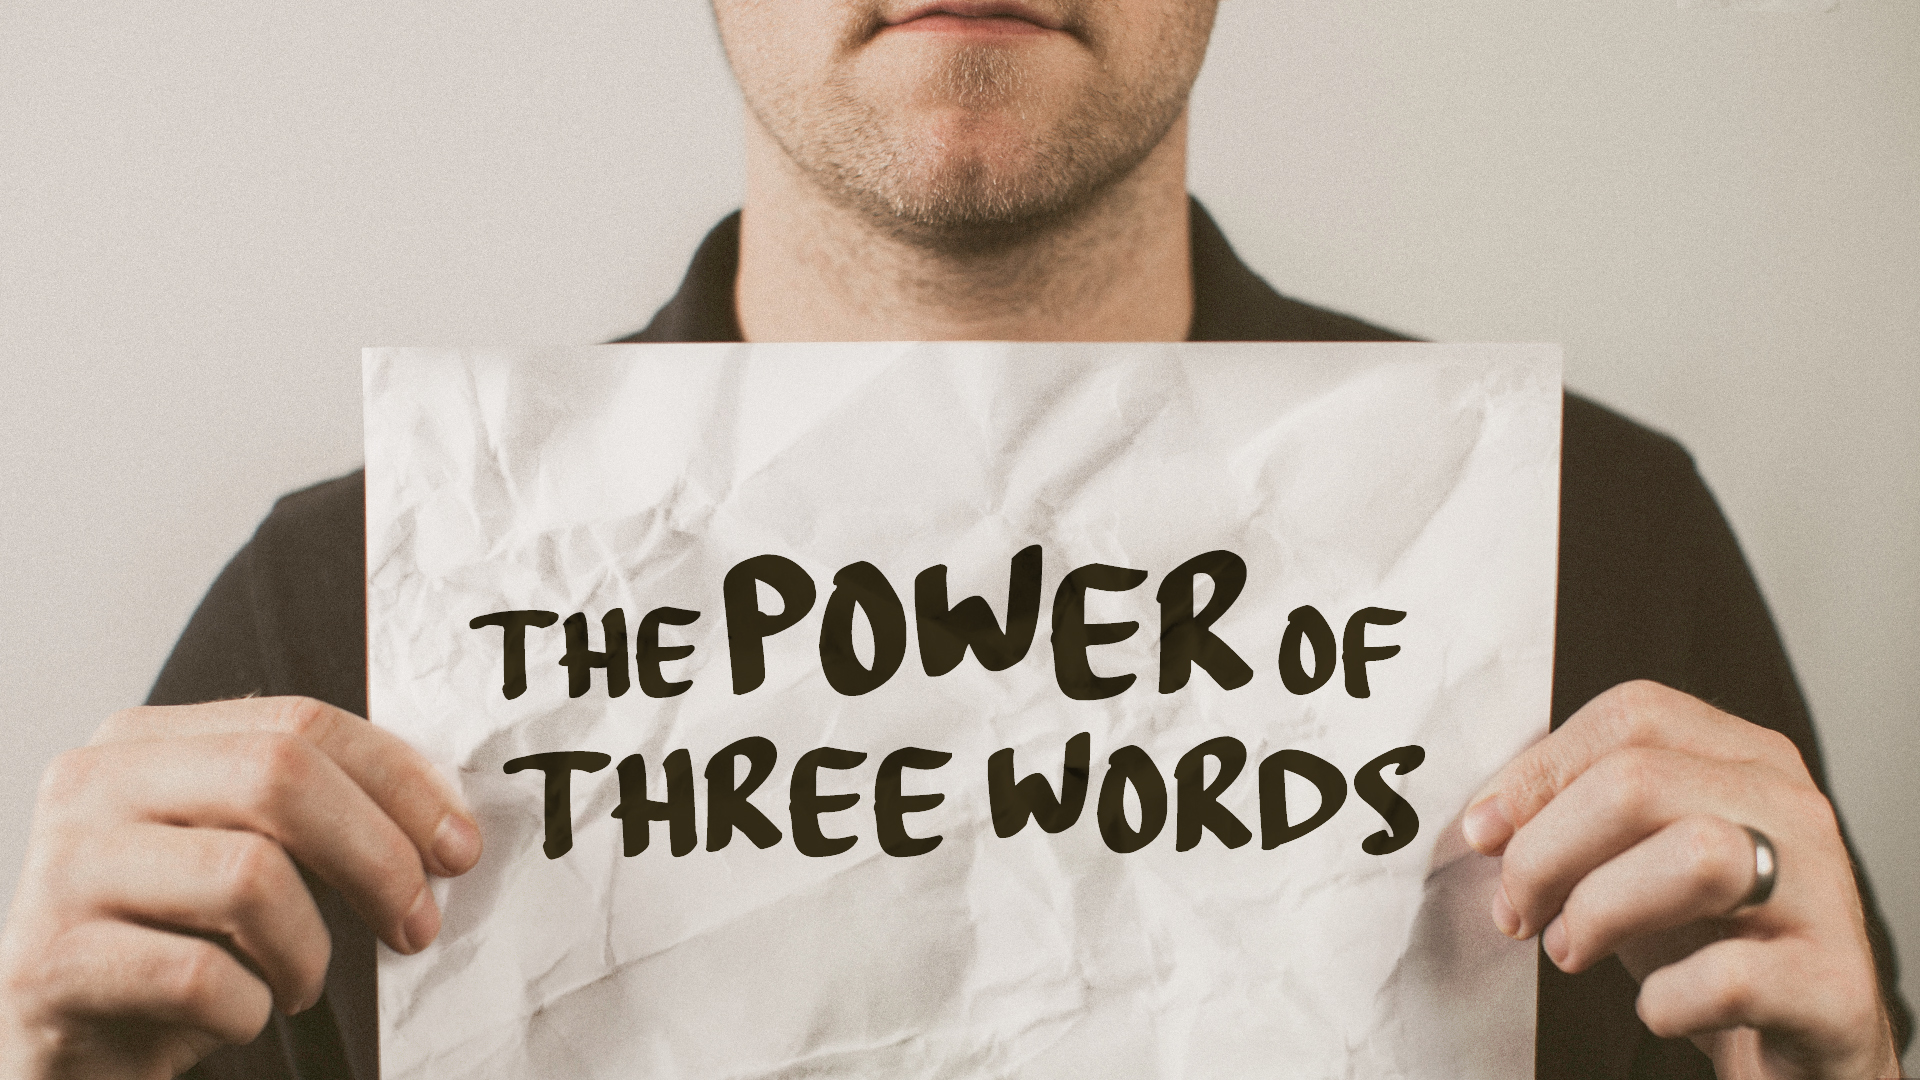 The Power of Three Words